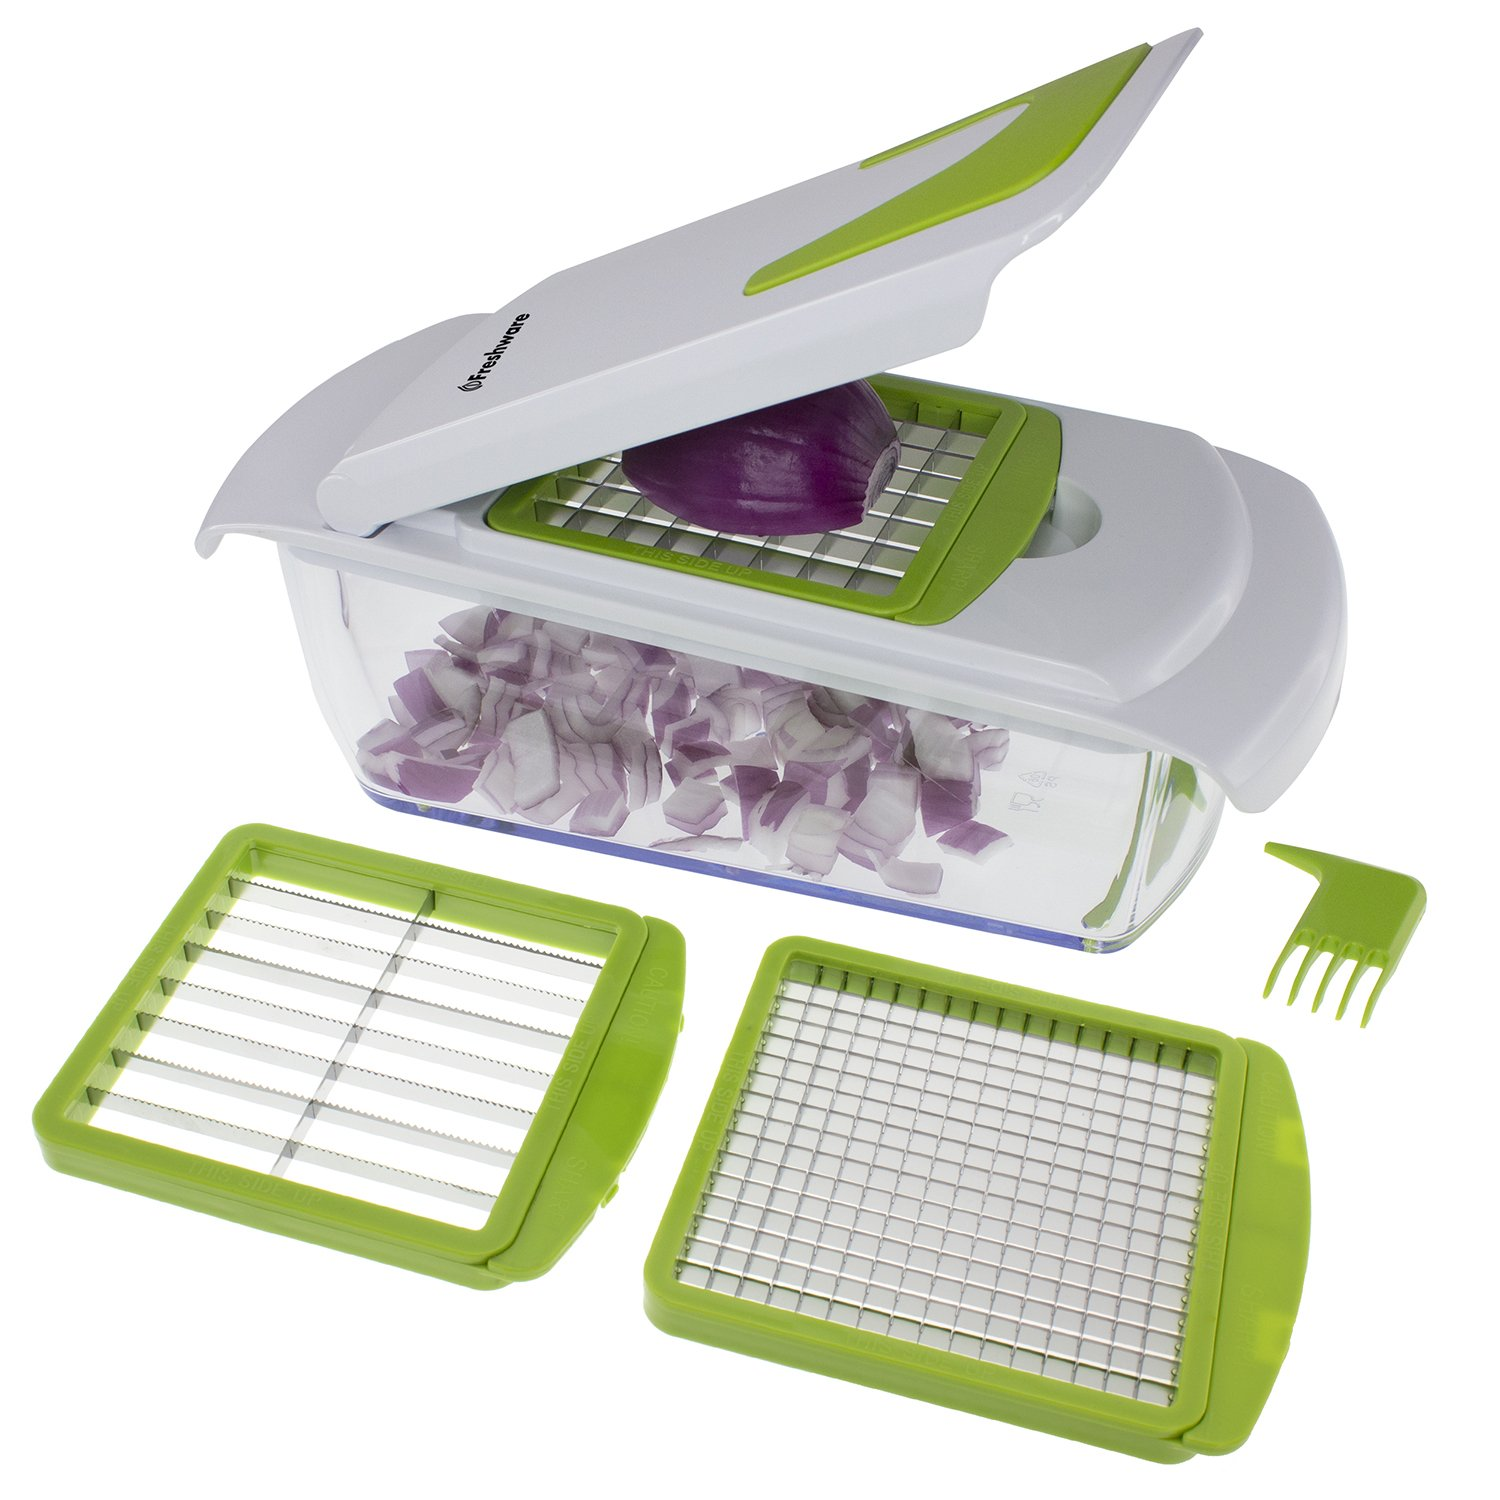 Freshware Onion Chopper, Vegetable Slicer, Food Chopper for Vegetable, Fruit, Nuts, Herbs and Salsa, 2-In-1